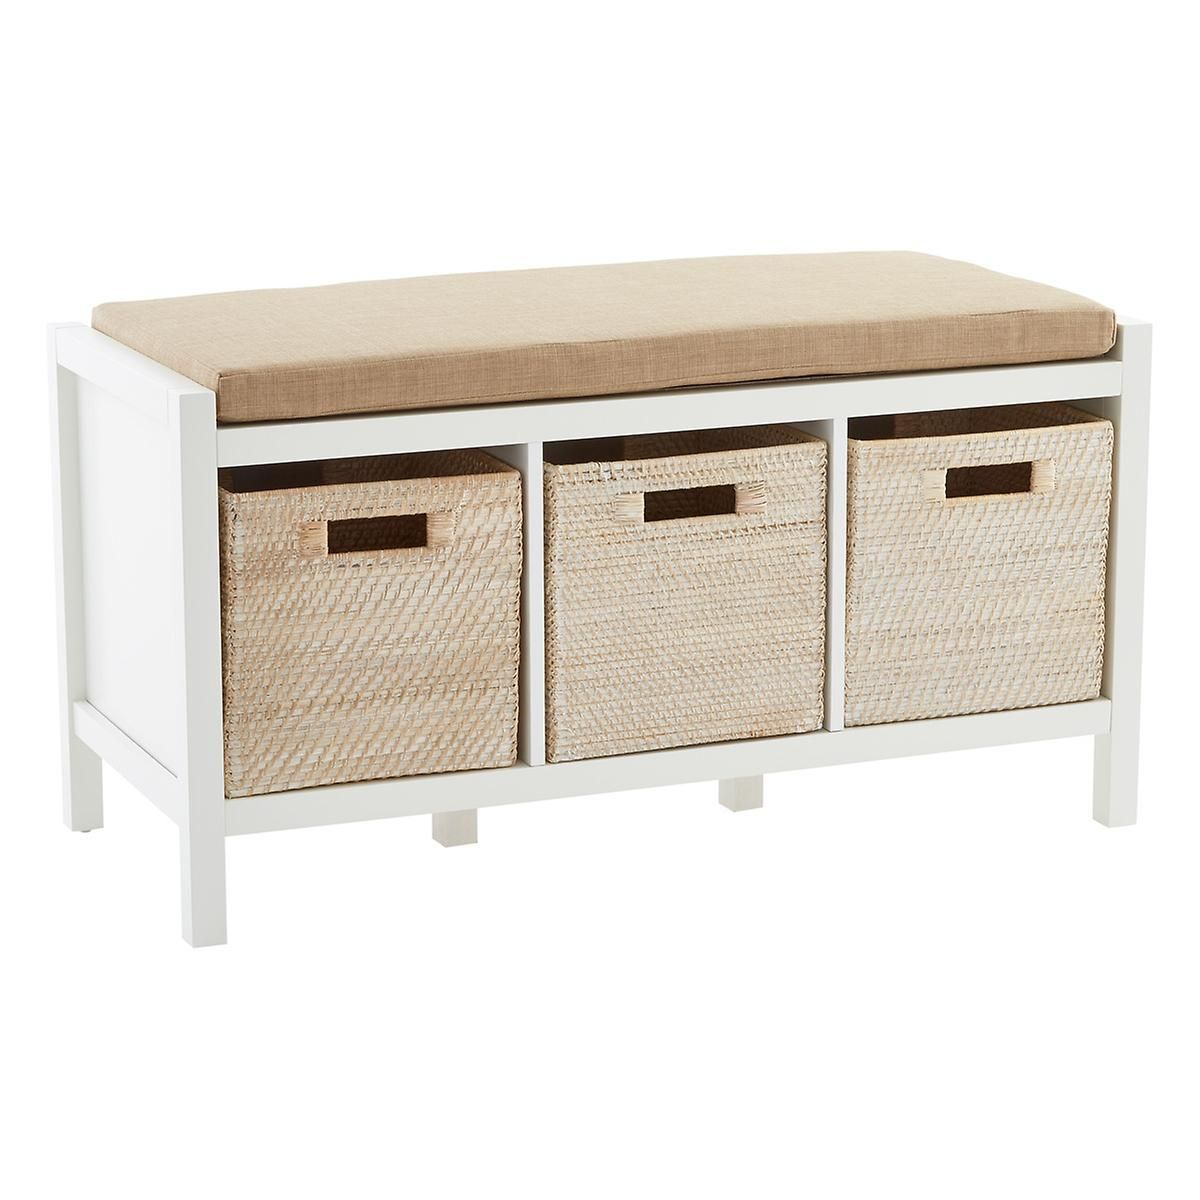 White Division Entryway Storage Bench with Cushion | Banco de ...